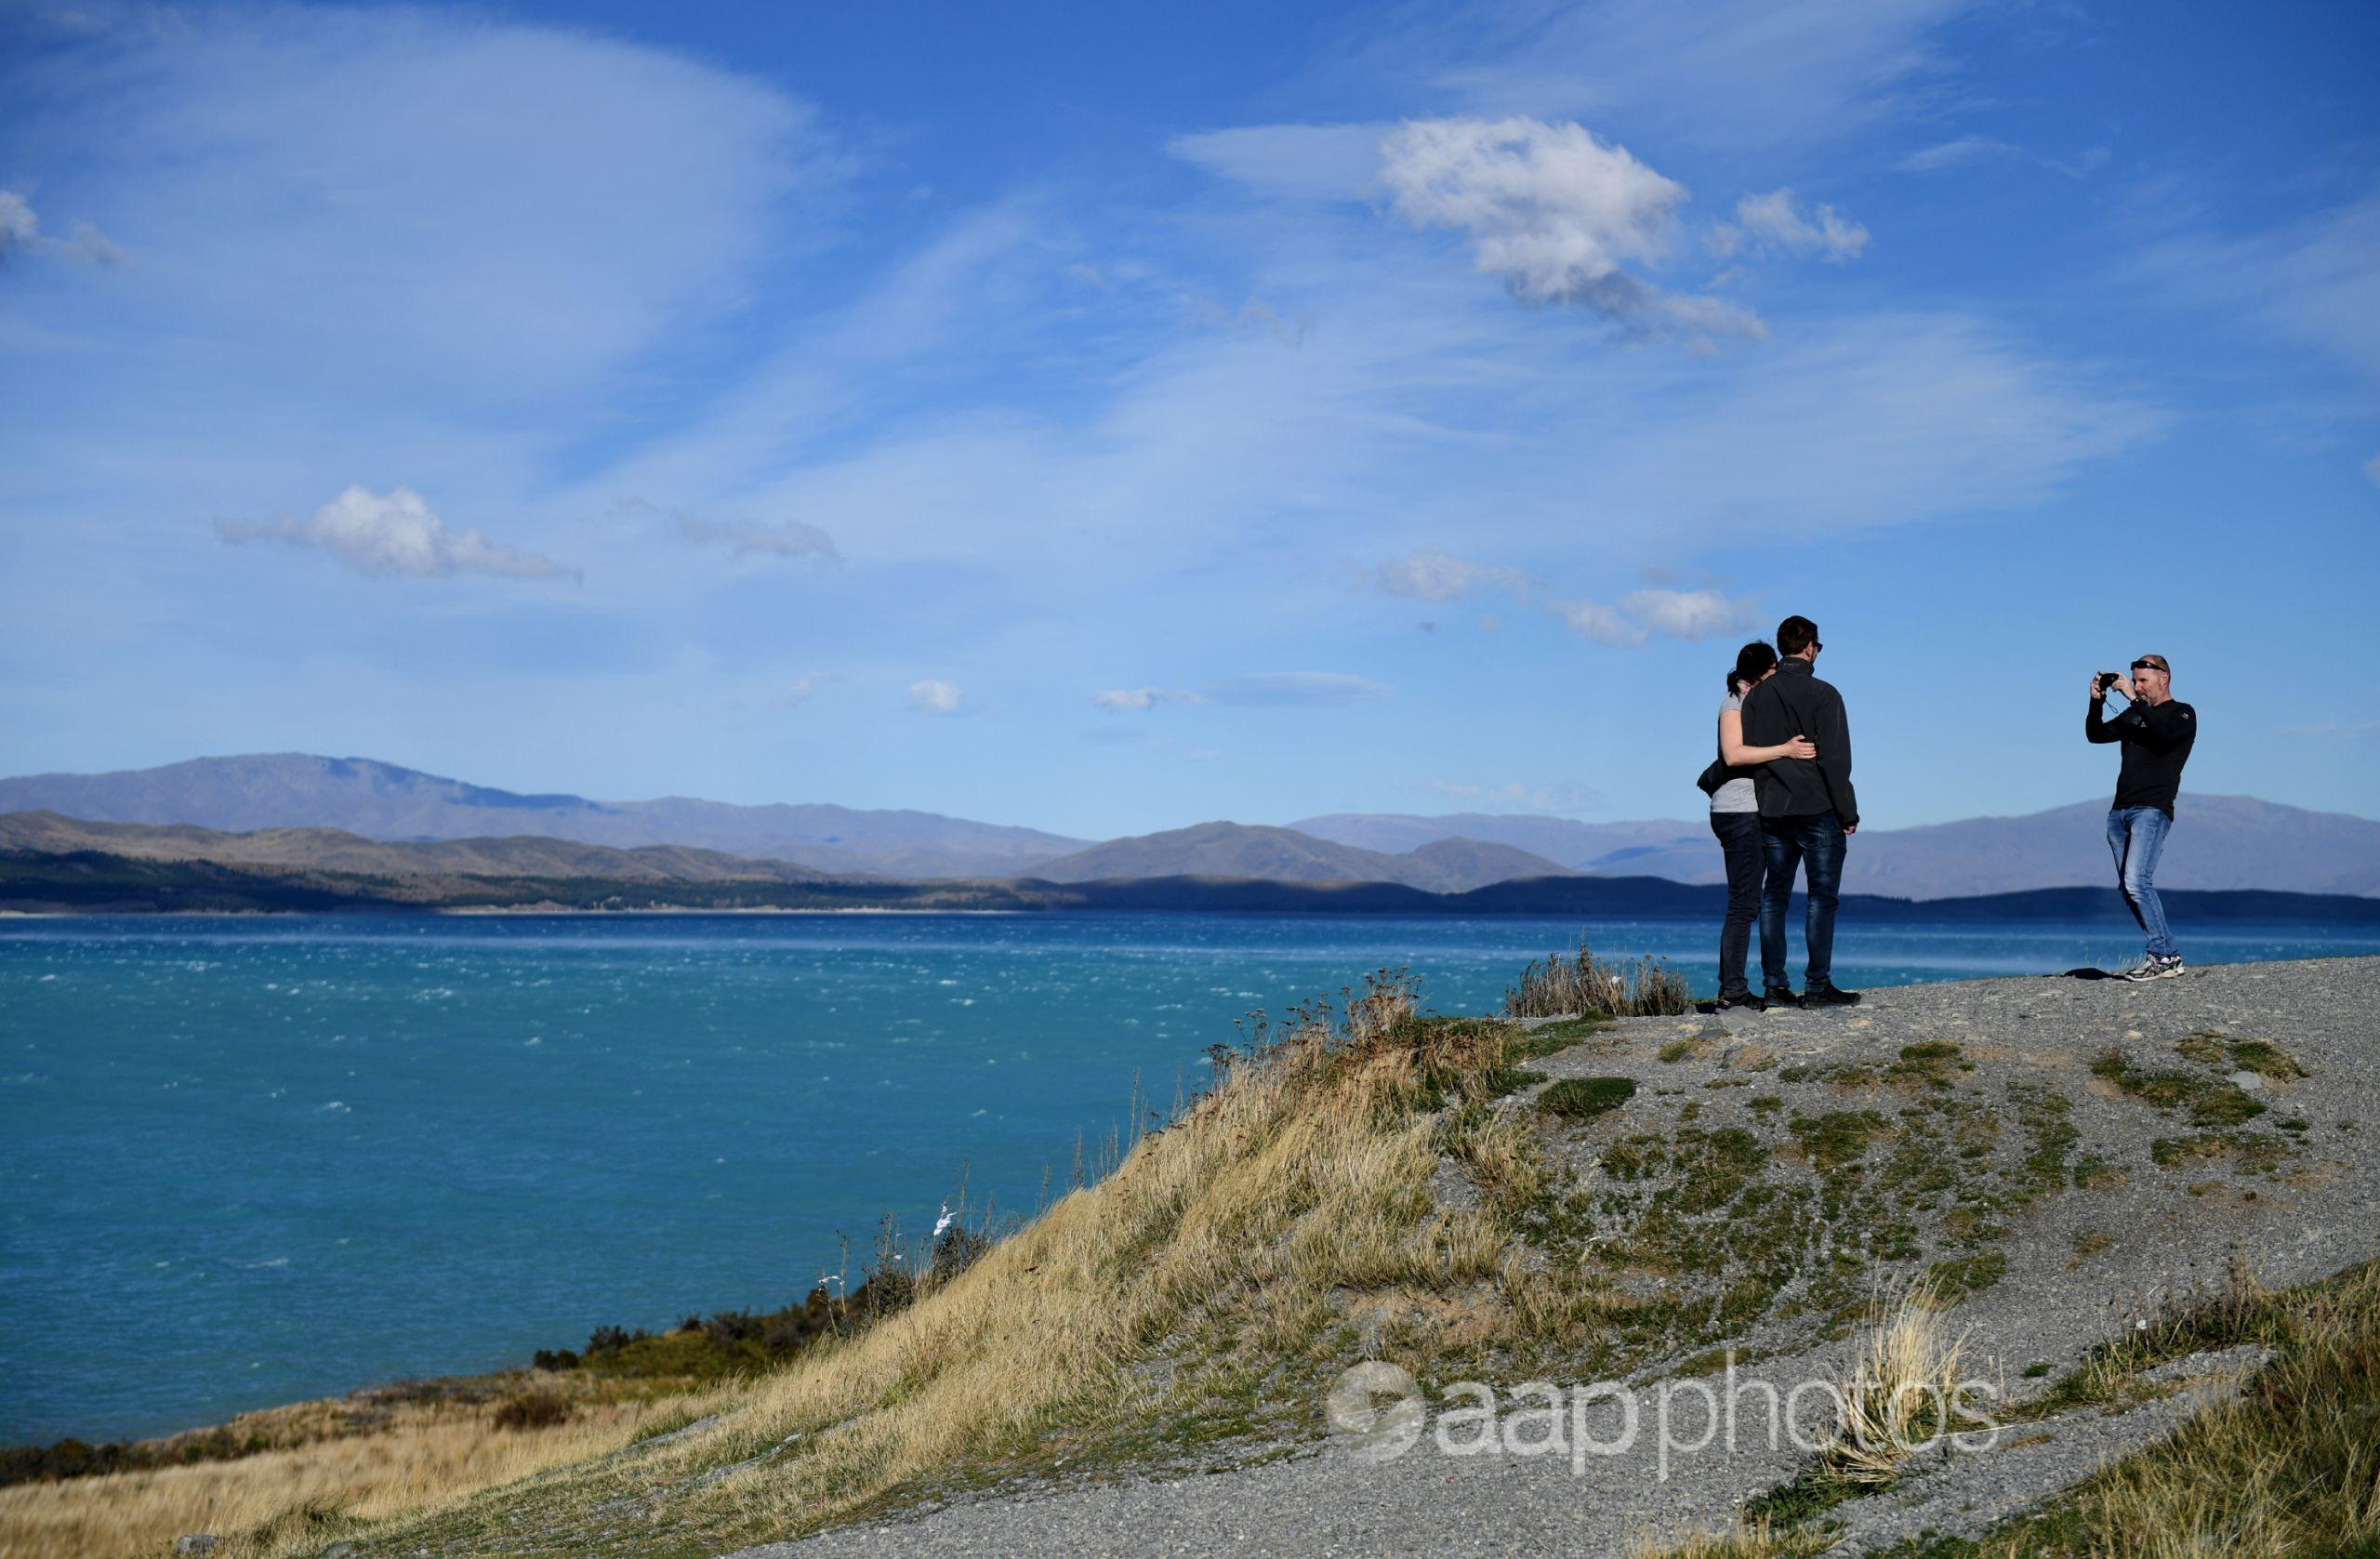 Couple has their photo taken on the shore of a lake in NZ